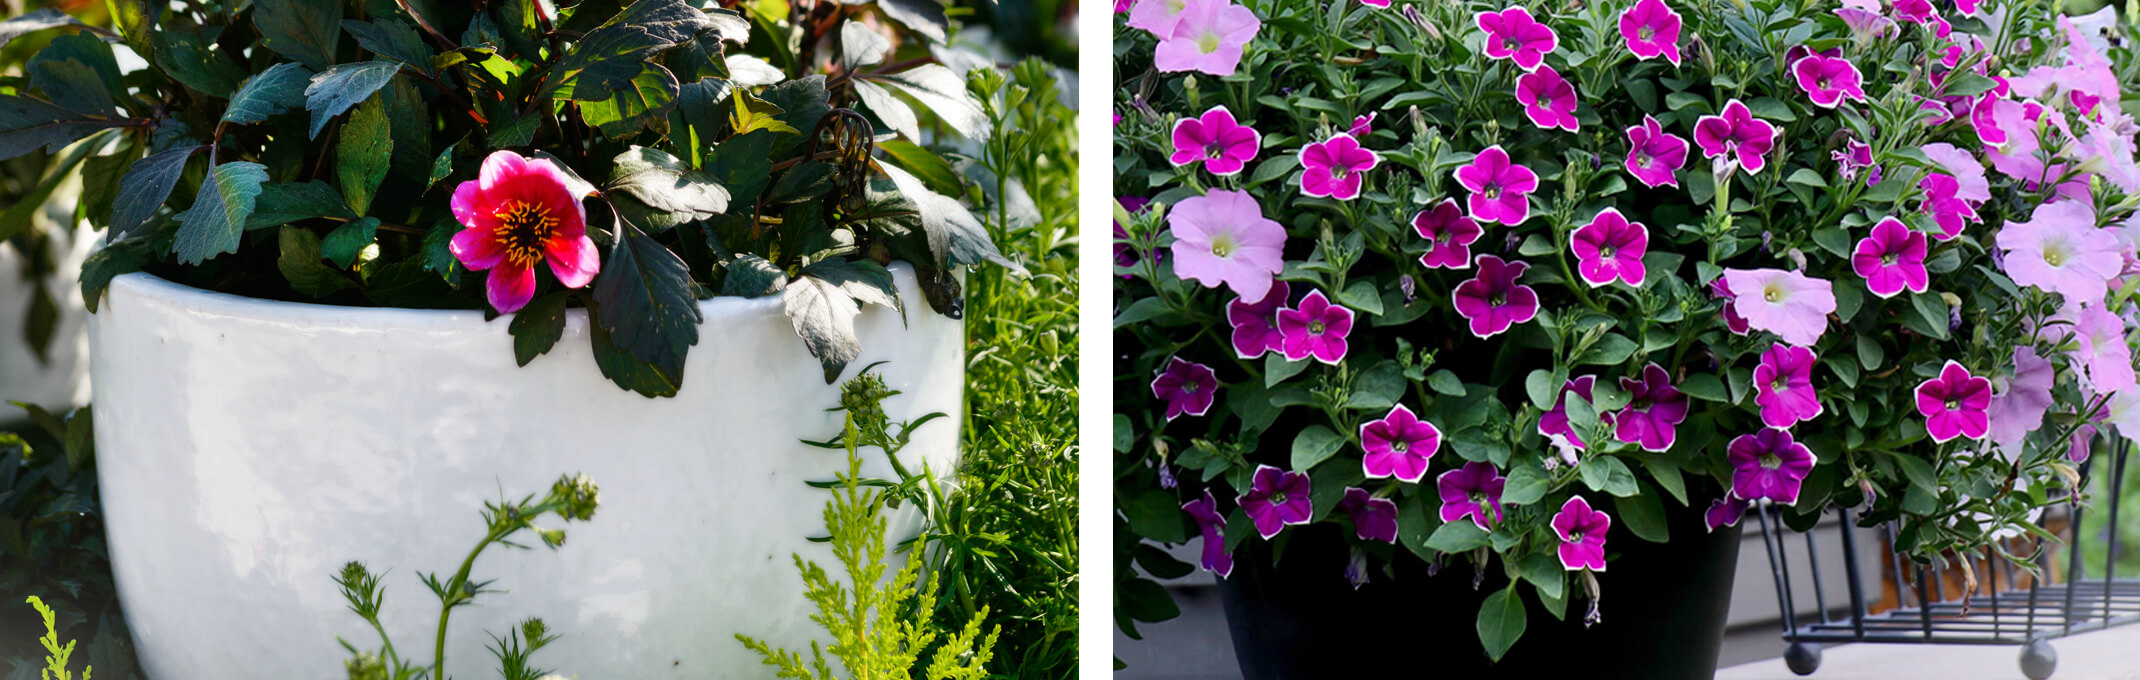 2 images of container gardens - the first is of a white glazed outdoor container with a pink rose inside and the second is a black pot with purple pink petunias